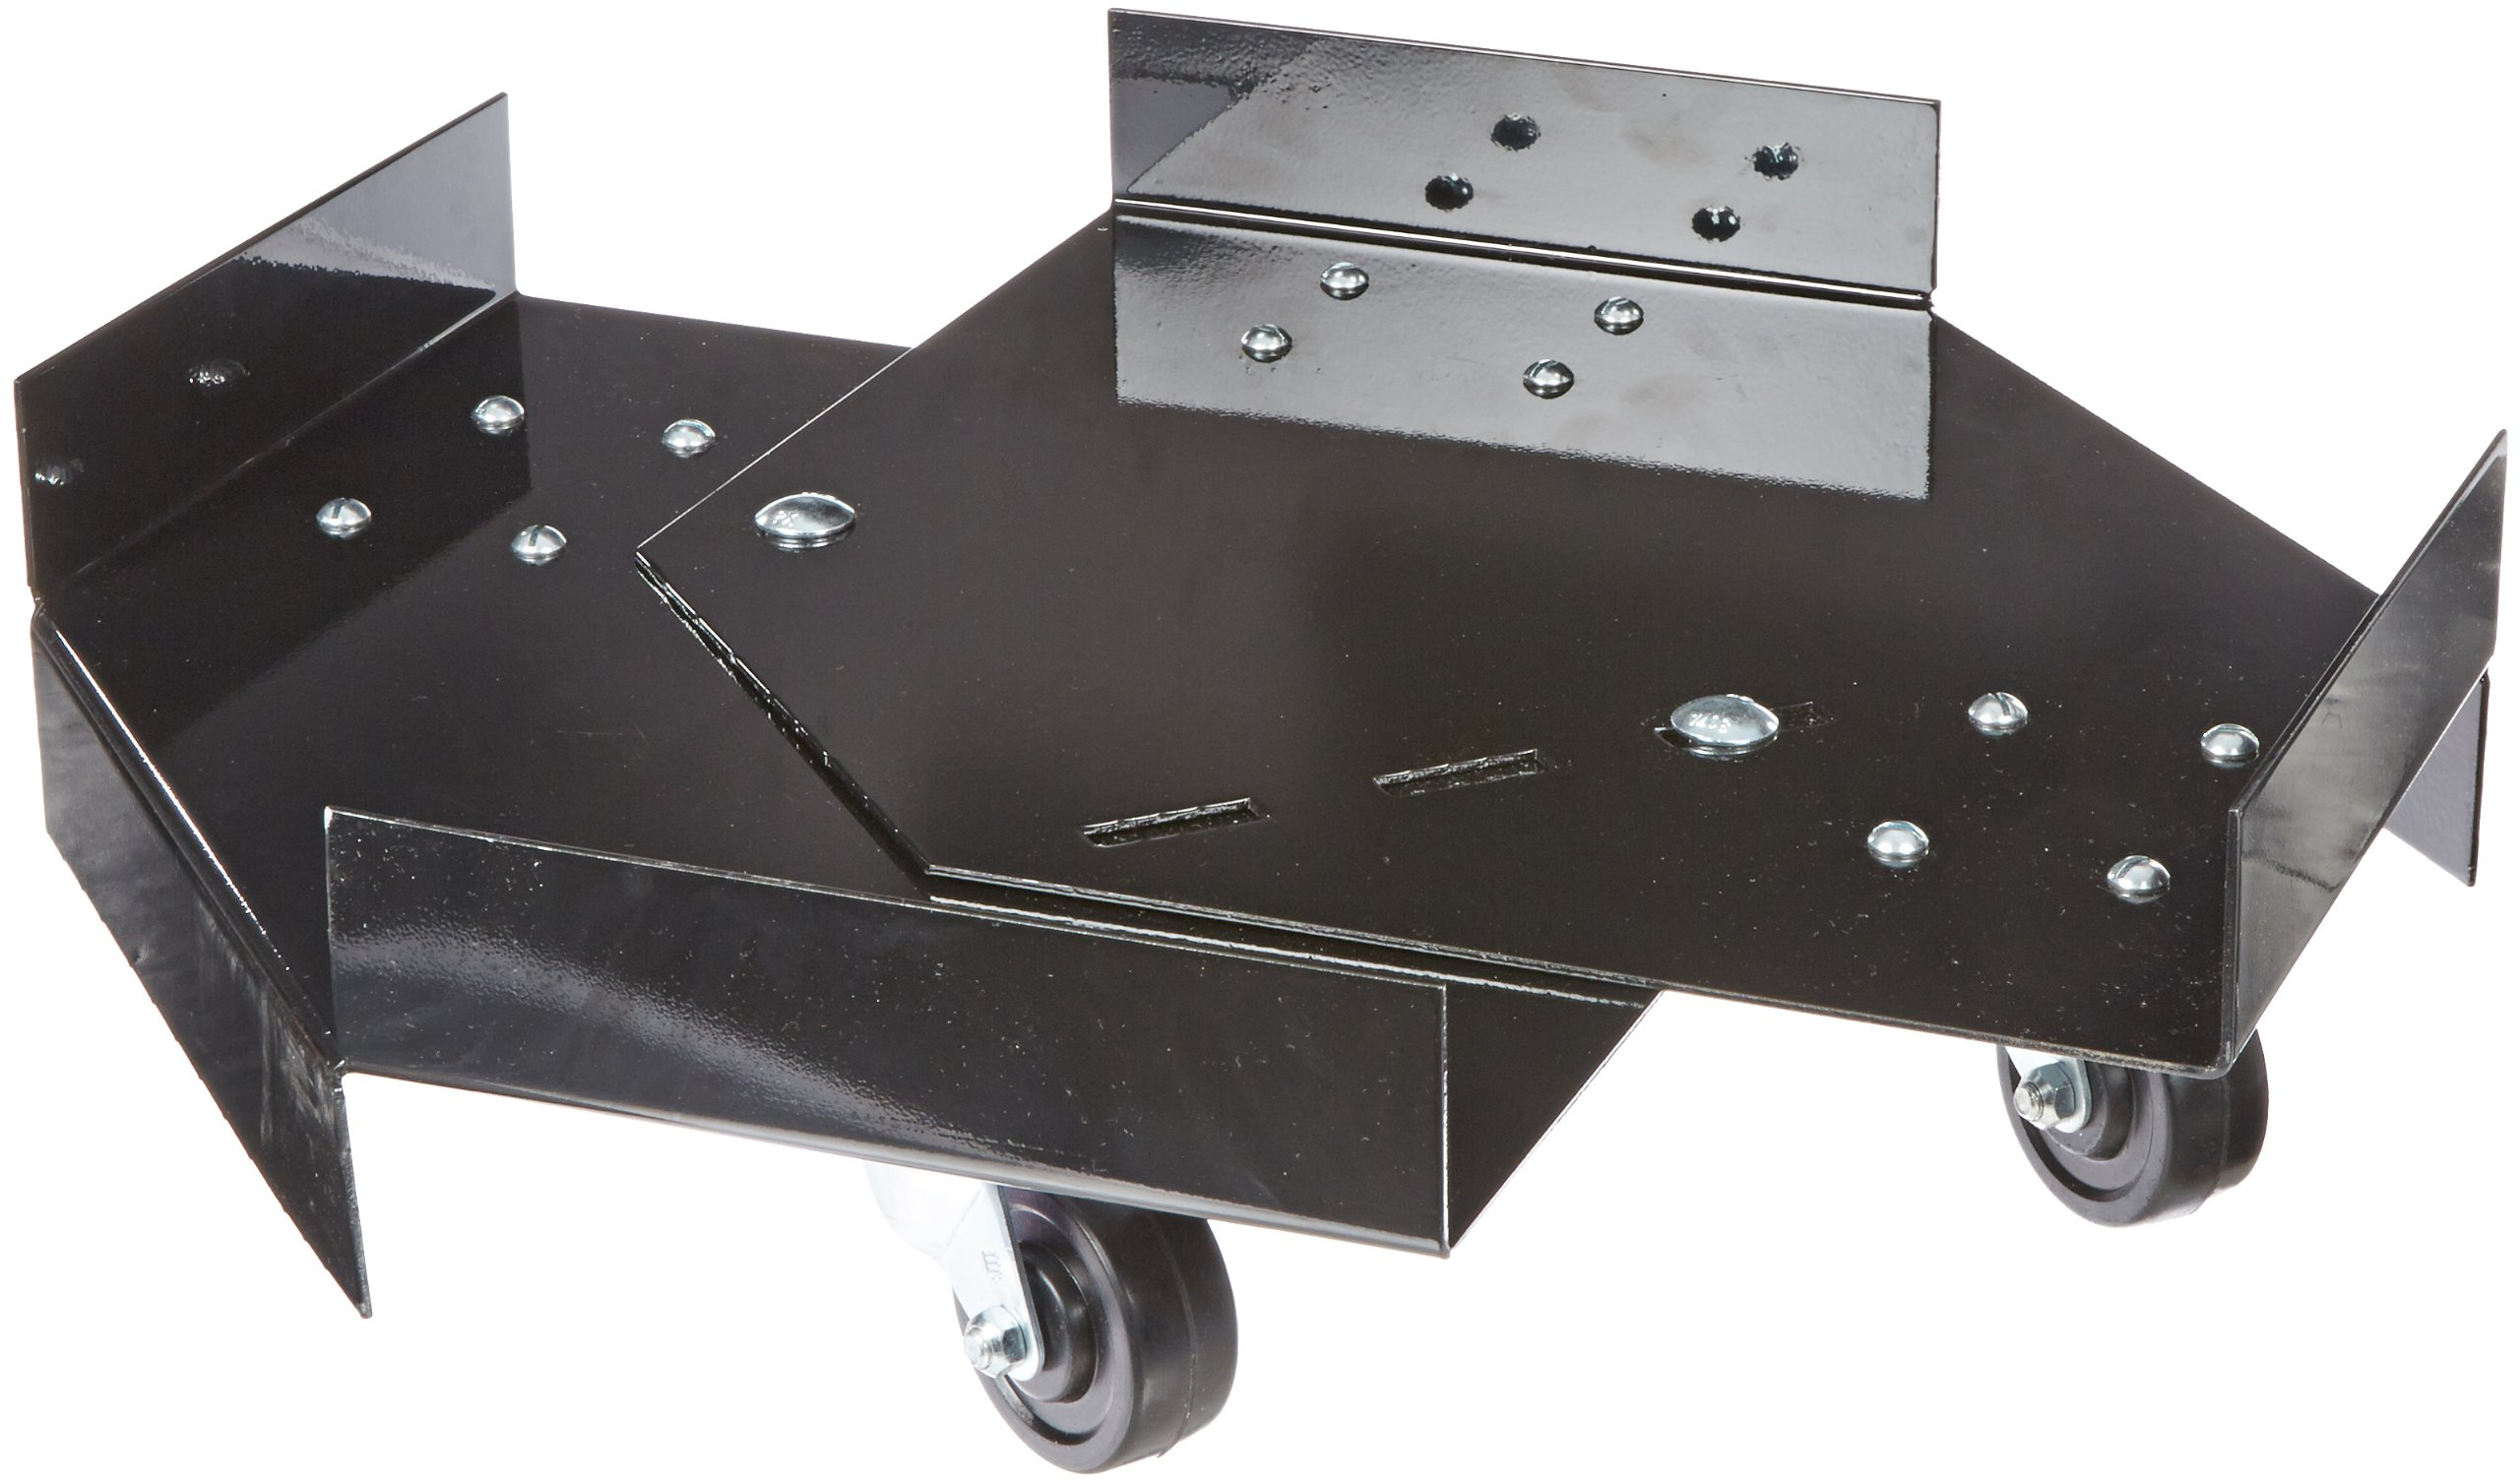 "UltraTech 0417 Steel Dolly, 800 lbs Capacity, 26-1/2"" Length x 26-1/2"" Width x 5"" Height, Black, For Ultra-Hard Top P1 Plus Spill Pallet and Ultra-Spill Collectors"